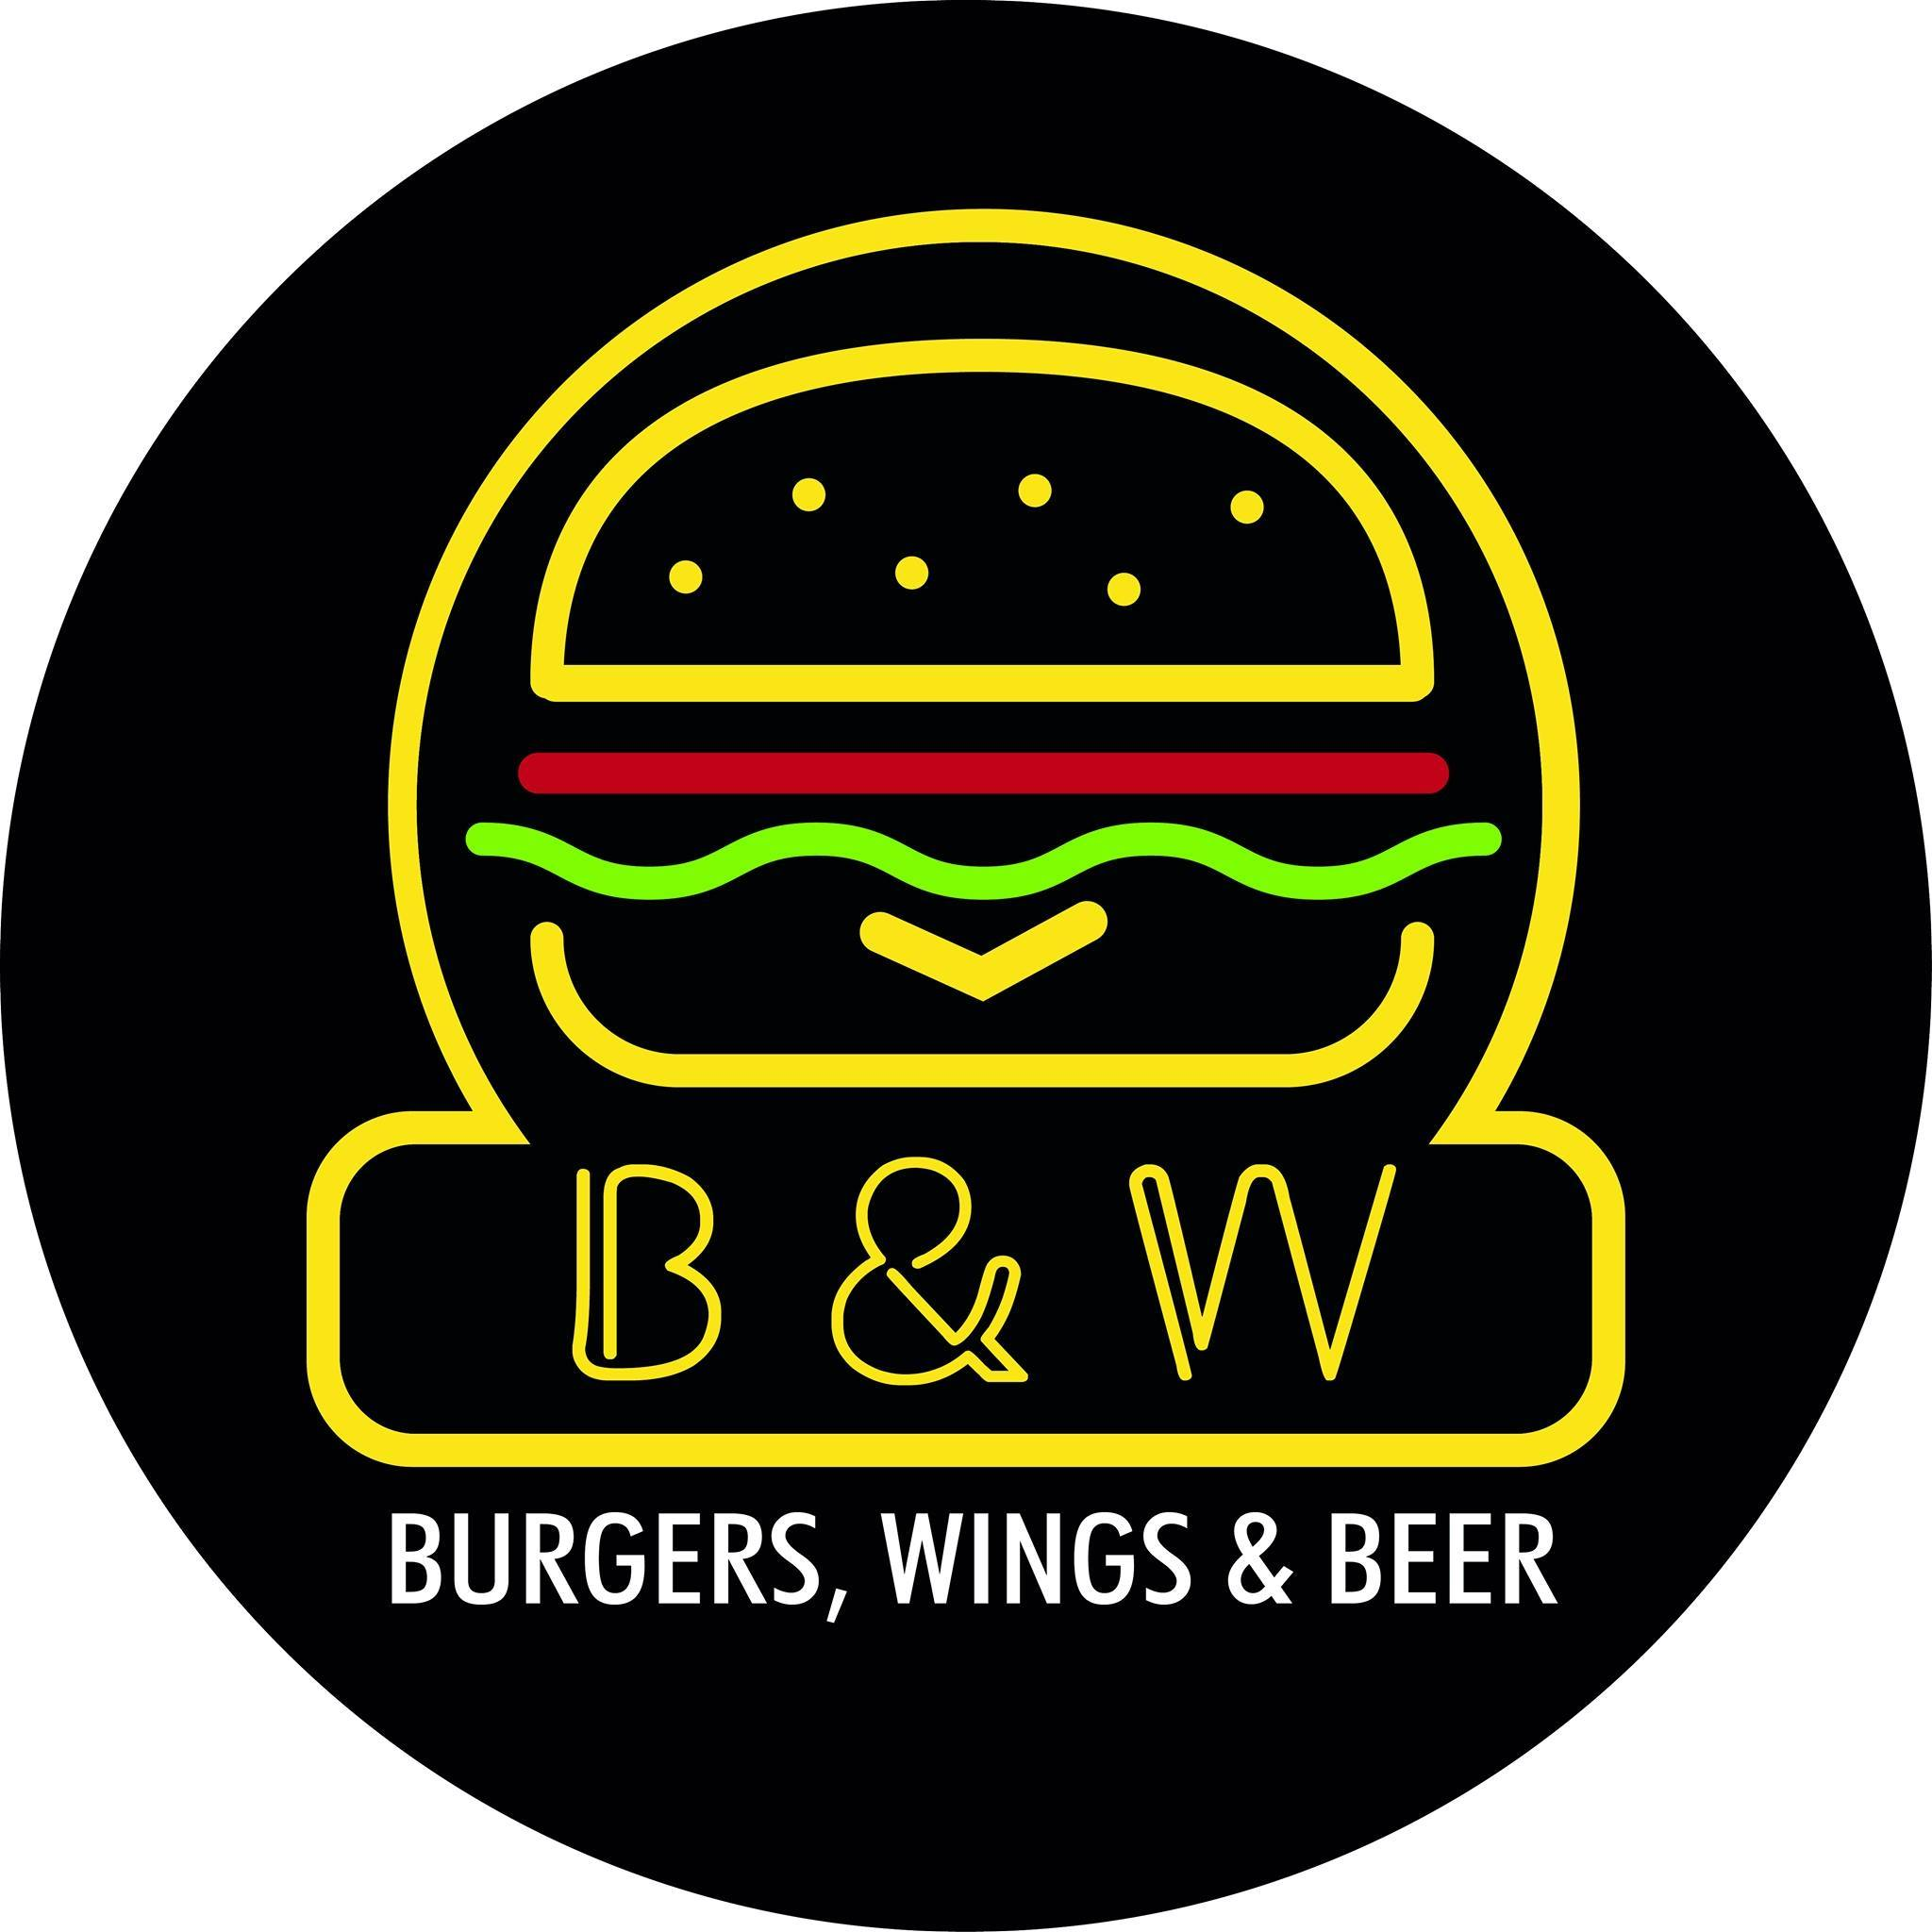 B&W Burgers, Wings & Beer